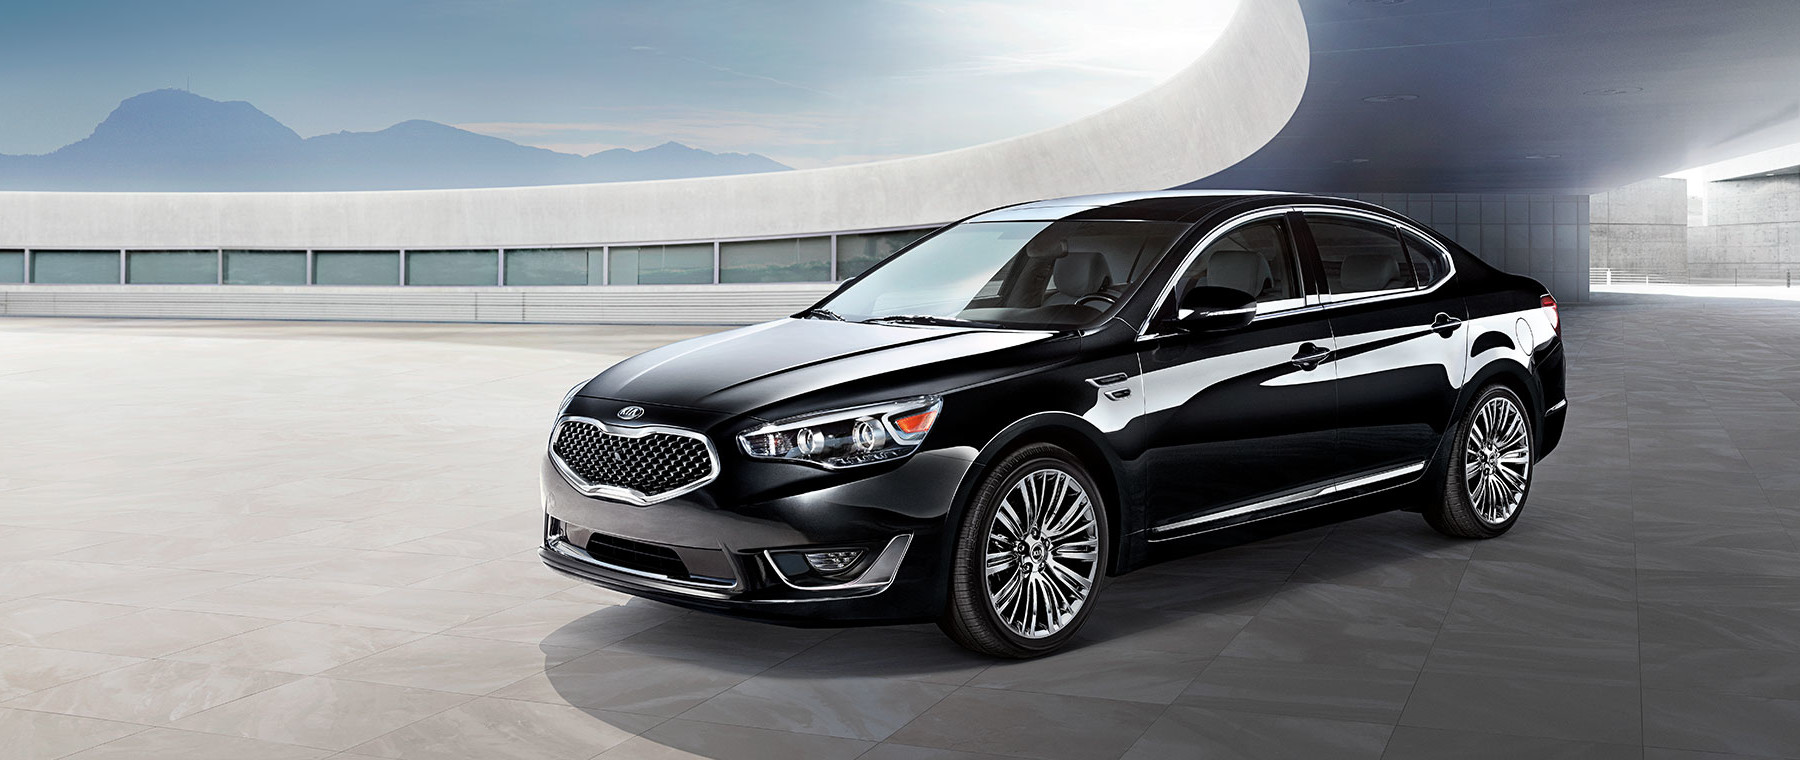 New 2016 Kia Cadenza chilling| Quirk Kia in Manchester NH